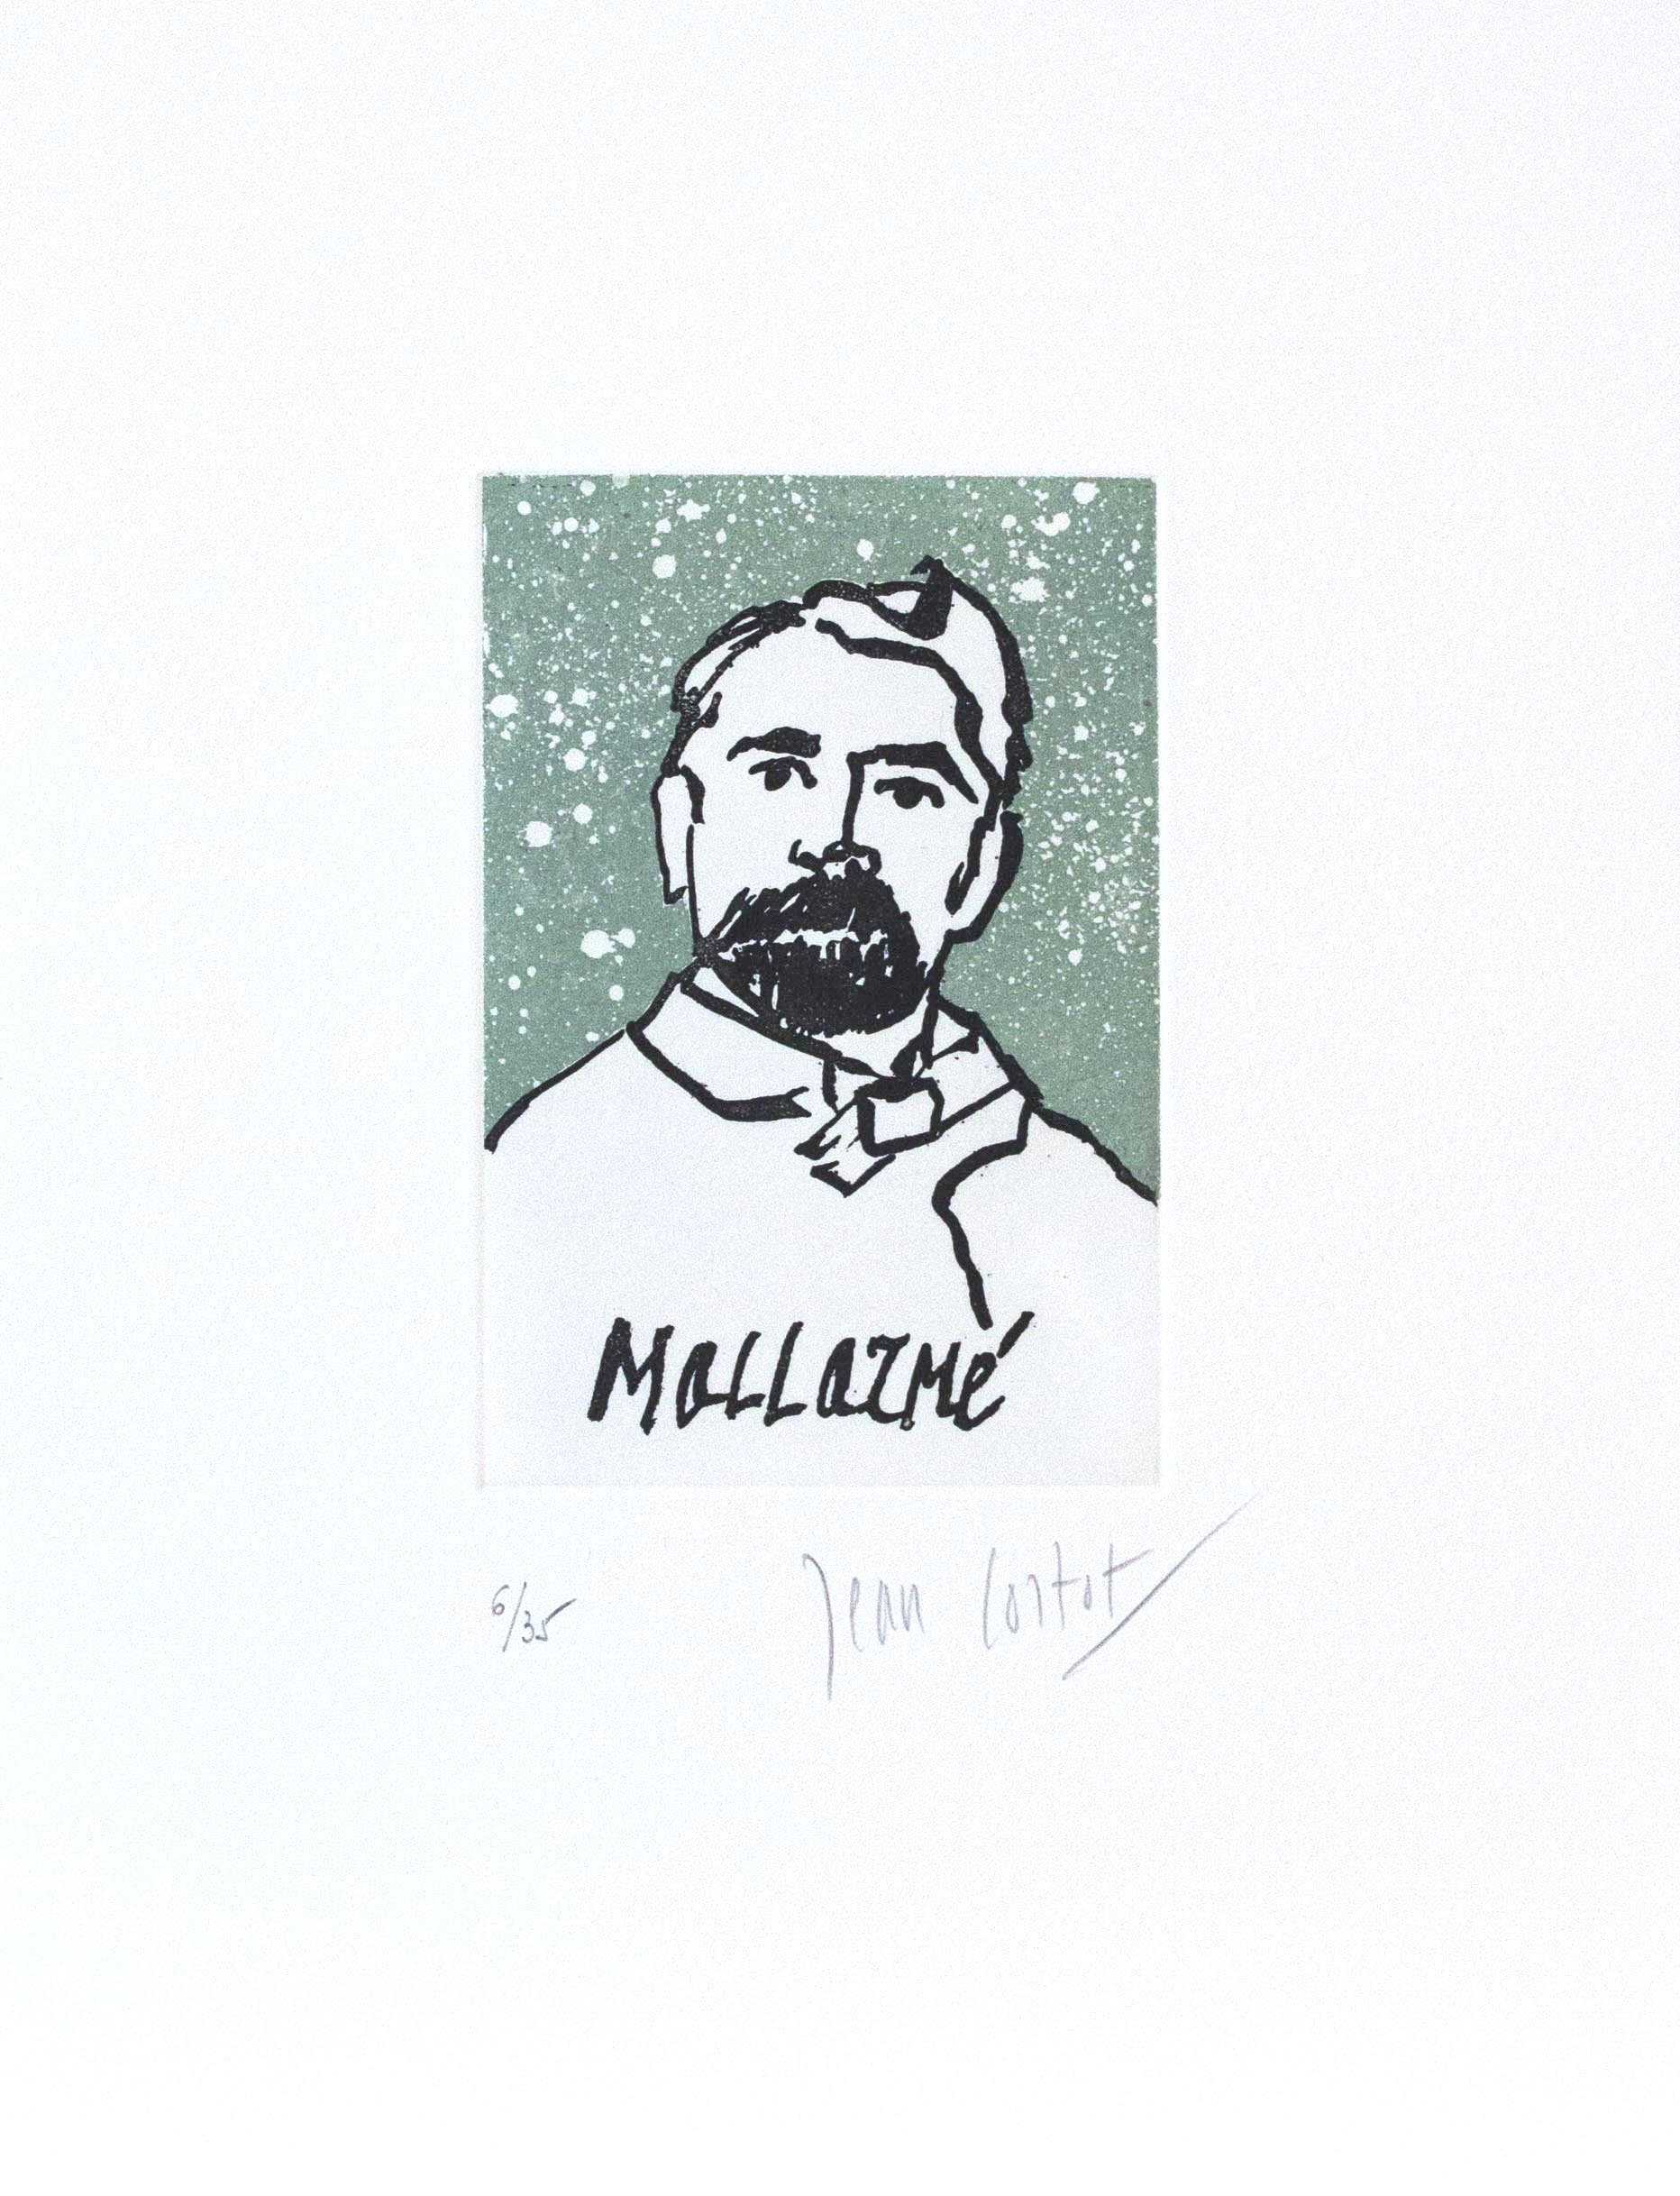 Stéphane Mallarmé,  Original Etching, 2012, 13 x 10 in., Signed and Numbered 13/35